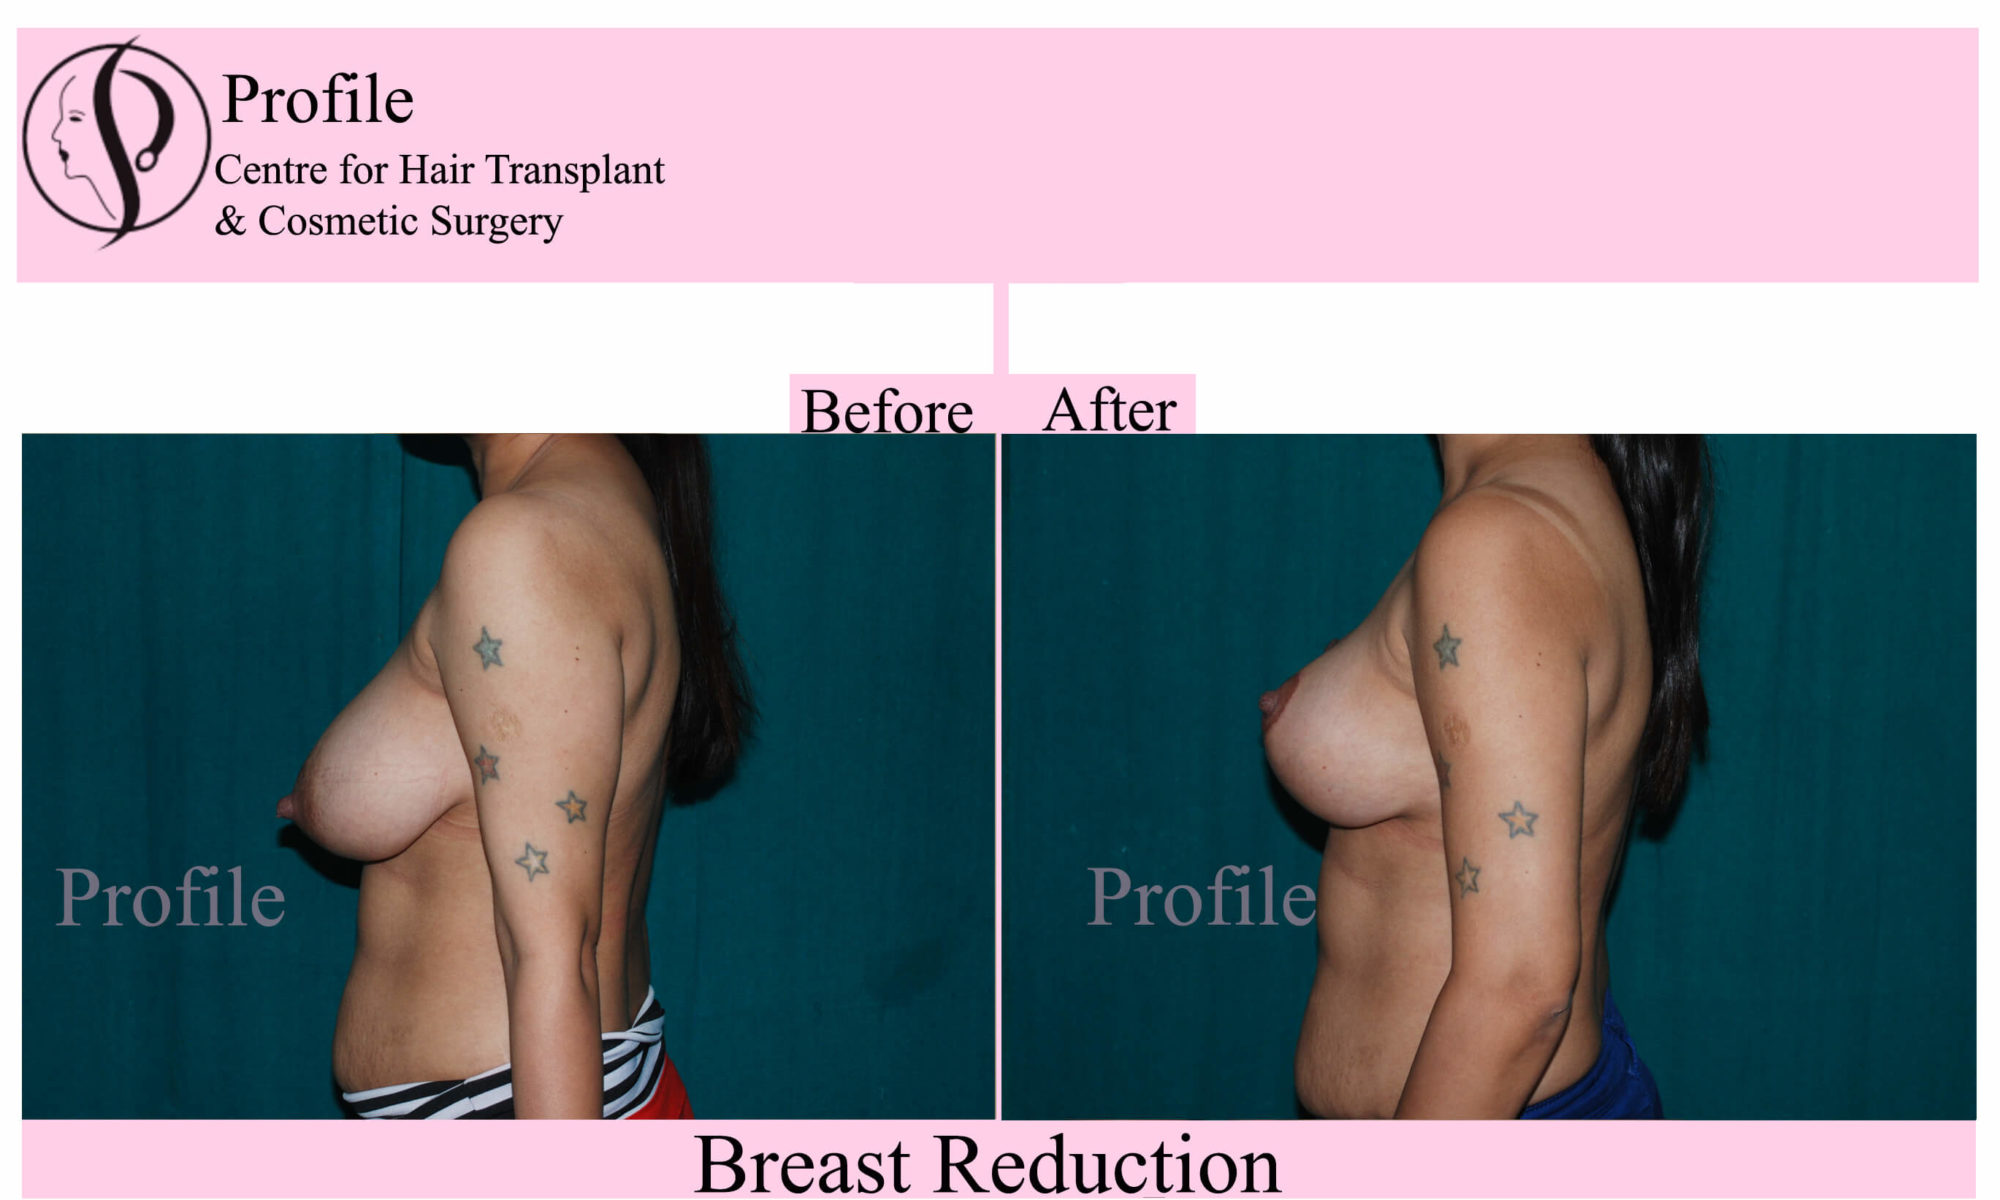 Breast Reduction Surgery results